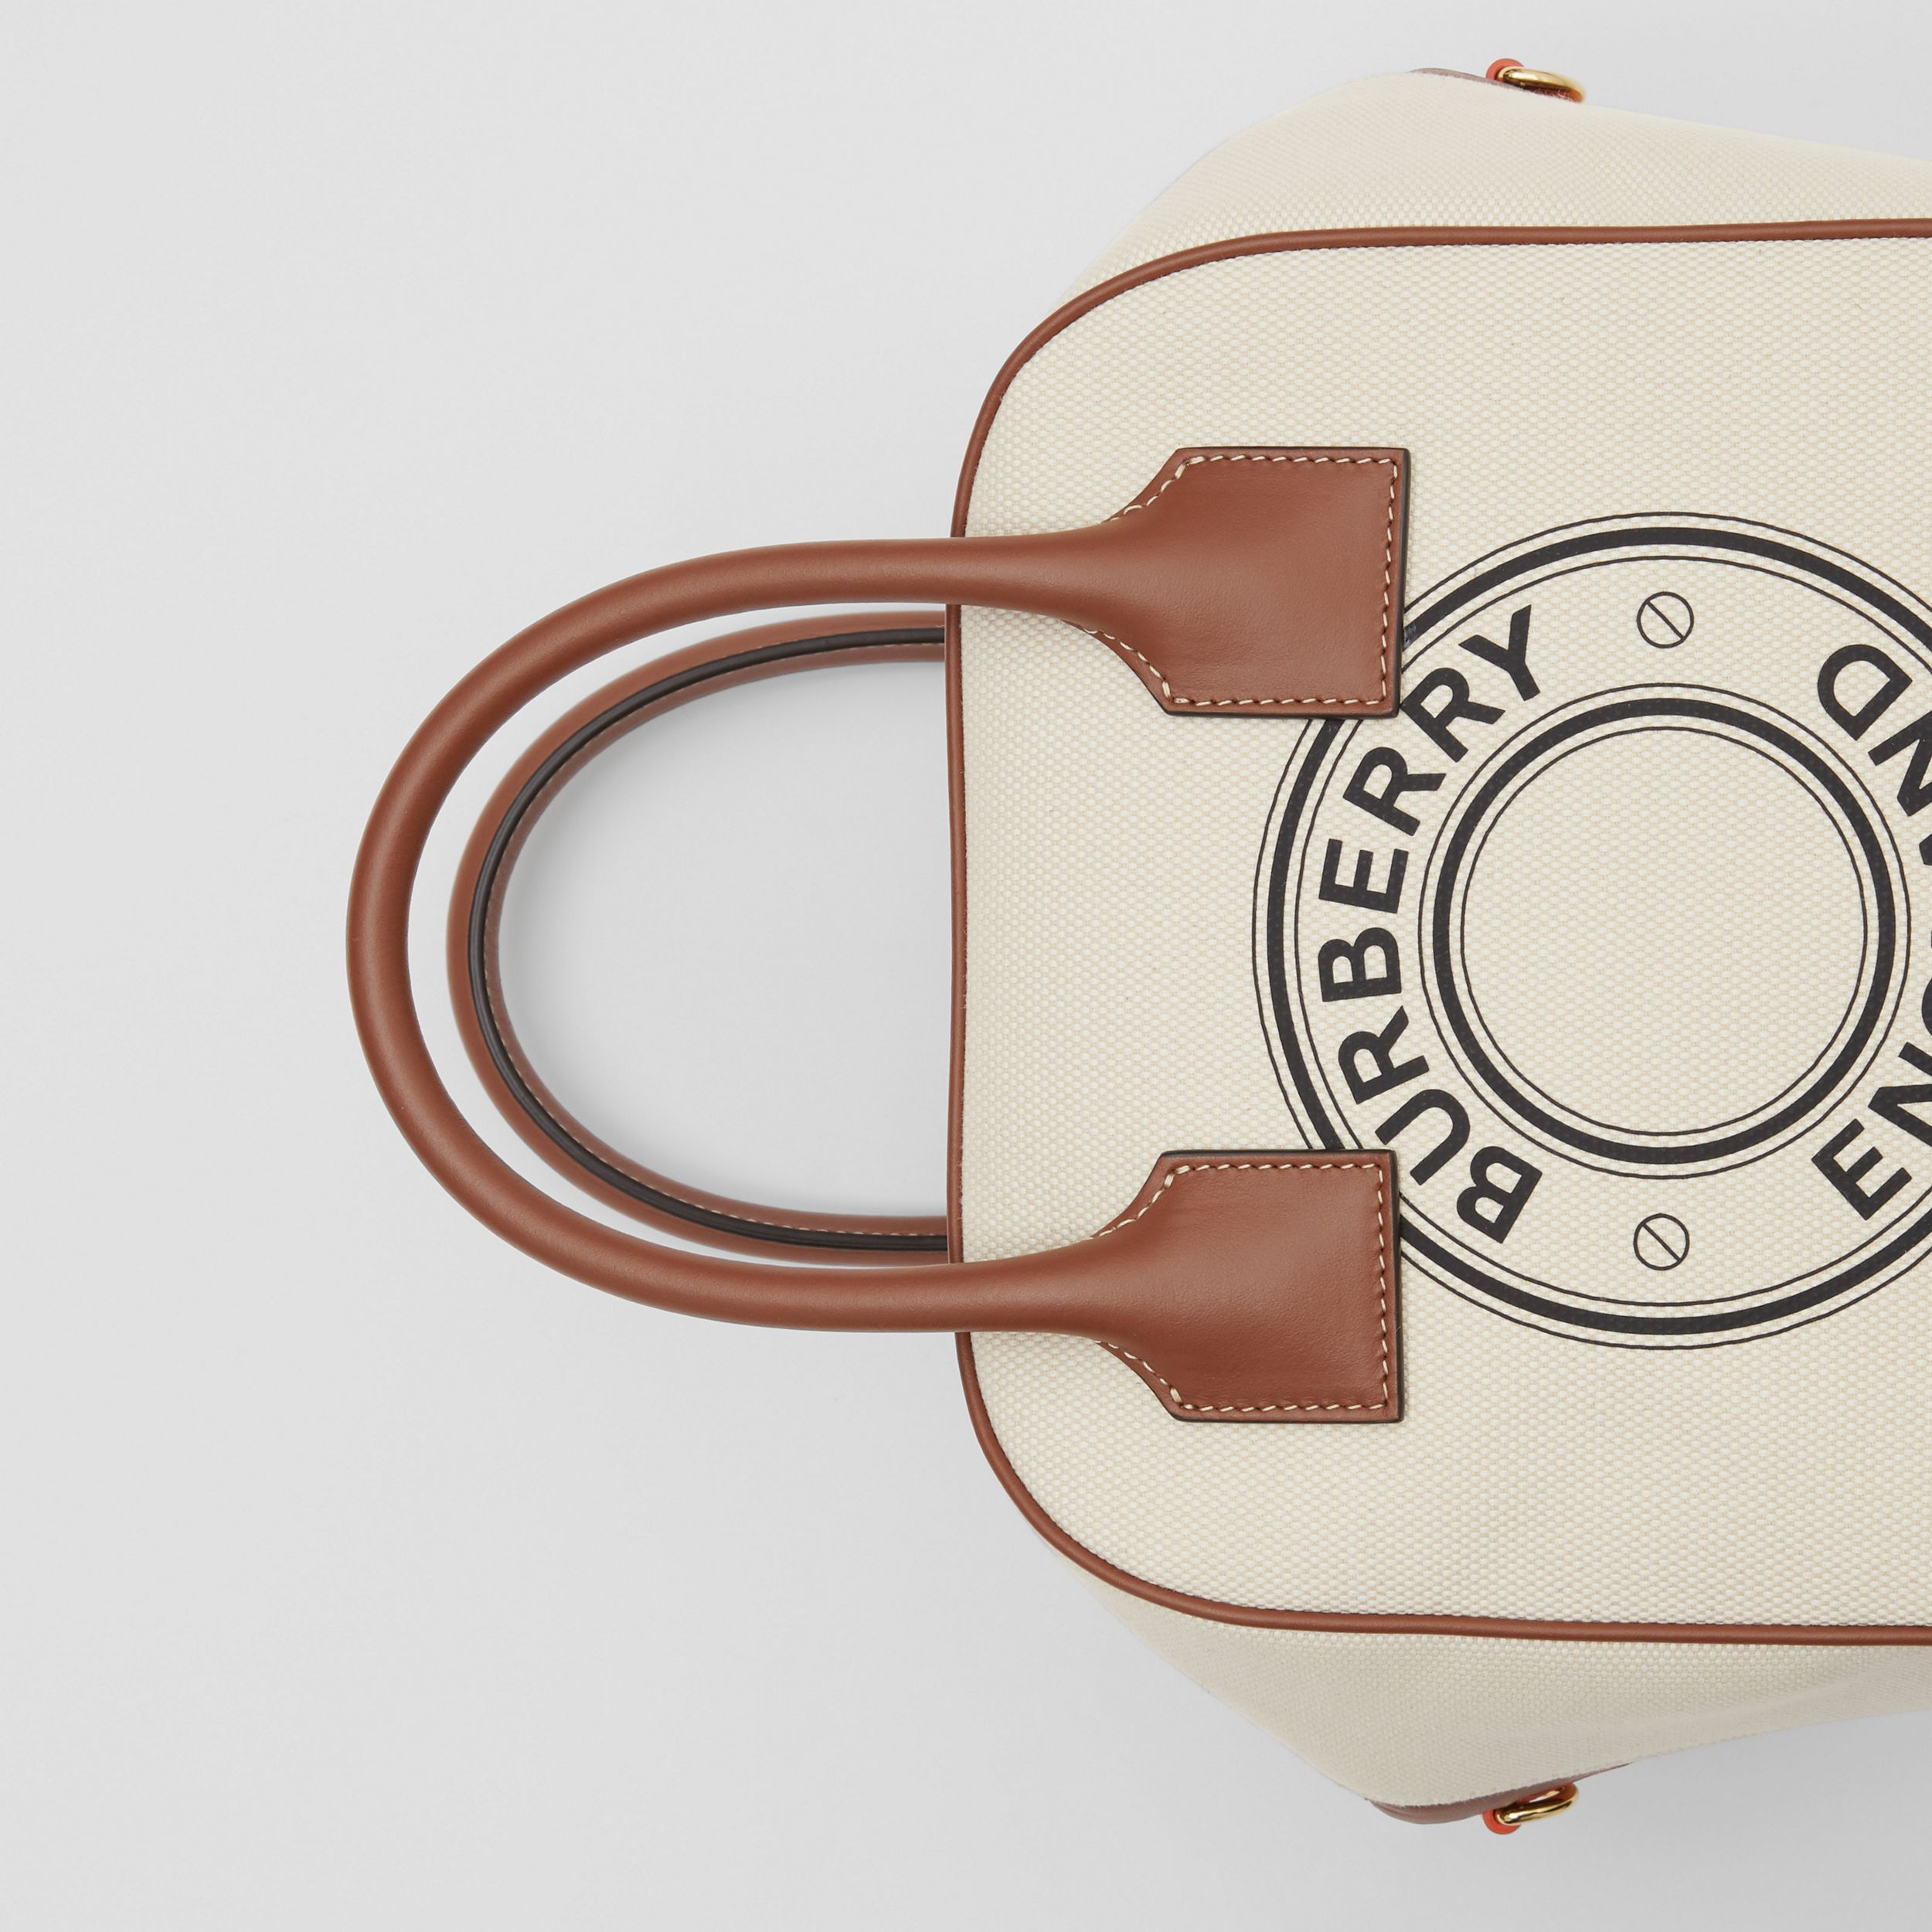 Small Logo Graphic Cotton Canvas Cube Bag in Natural/tan - Women | Burberry Australia - 2